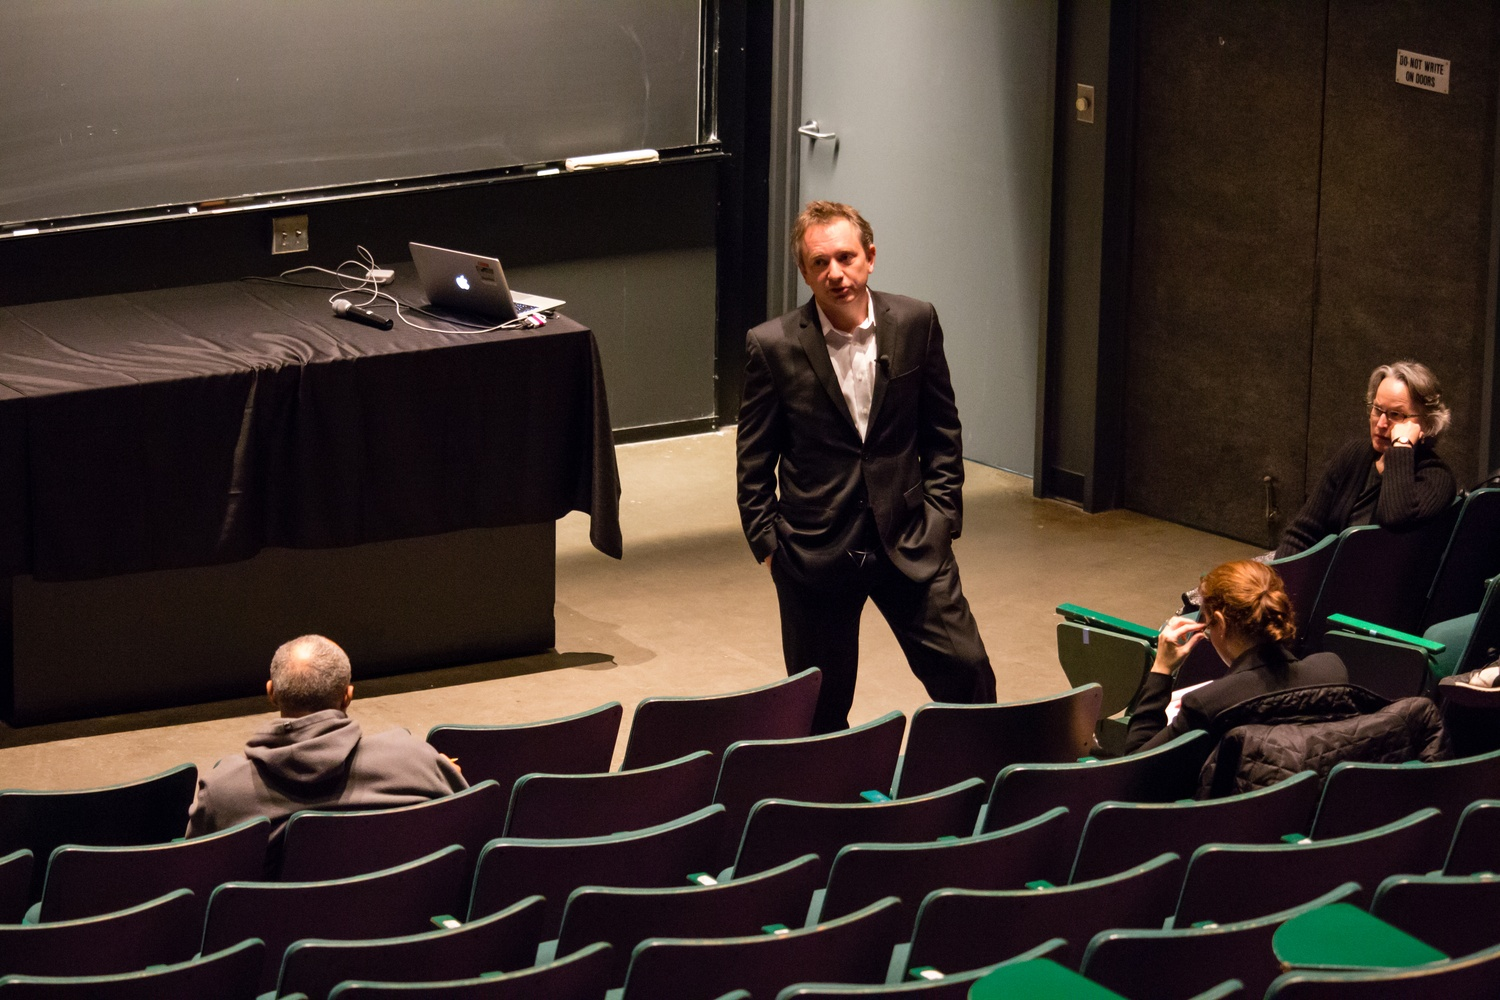 Harvard Law School professor David J. Barron '89, chair of the electronic communications policy task force, discusses challenges surrounding Harvard's current electronic communications policy at an open forum in the Science Center on Wednesday.